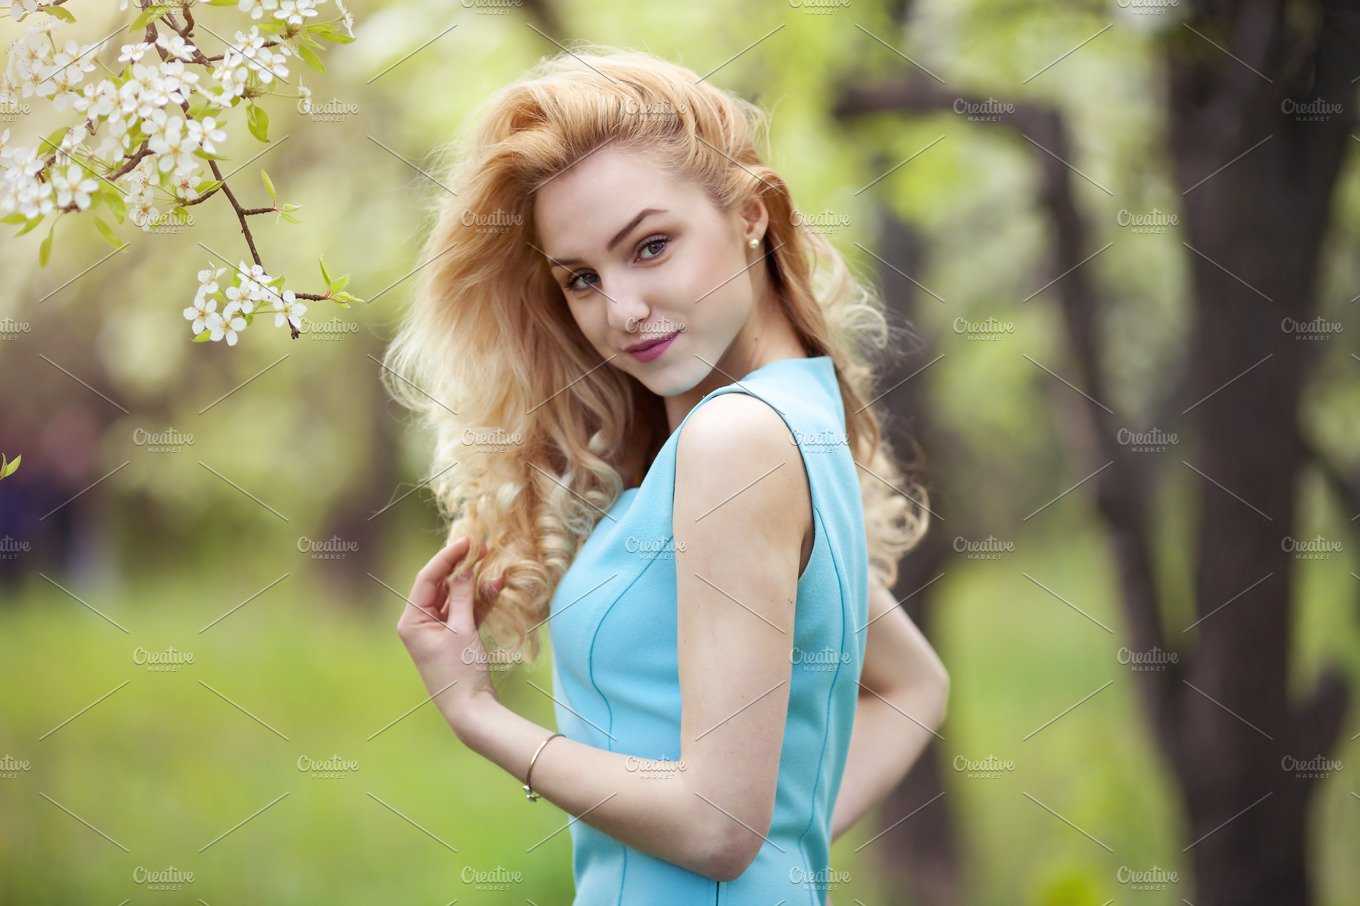 Beautiful woman spring portrait smiling girl with flowers outdoor beautiful woman spring portrait smiling girl with flowers outdoor carefree young woman on nature people images creative market izmirmasajfo